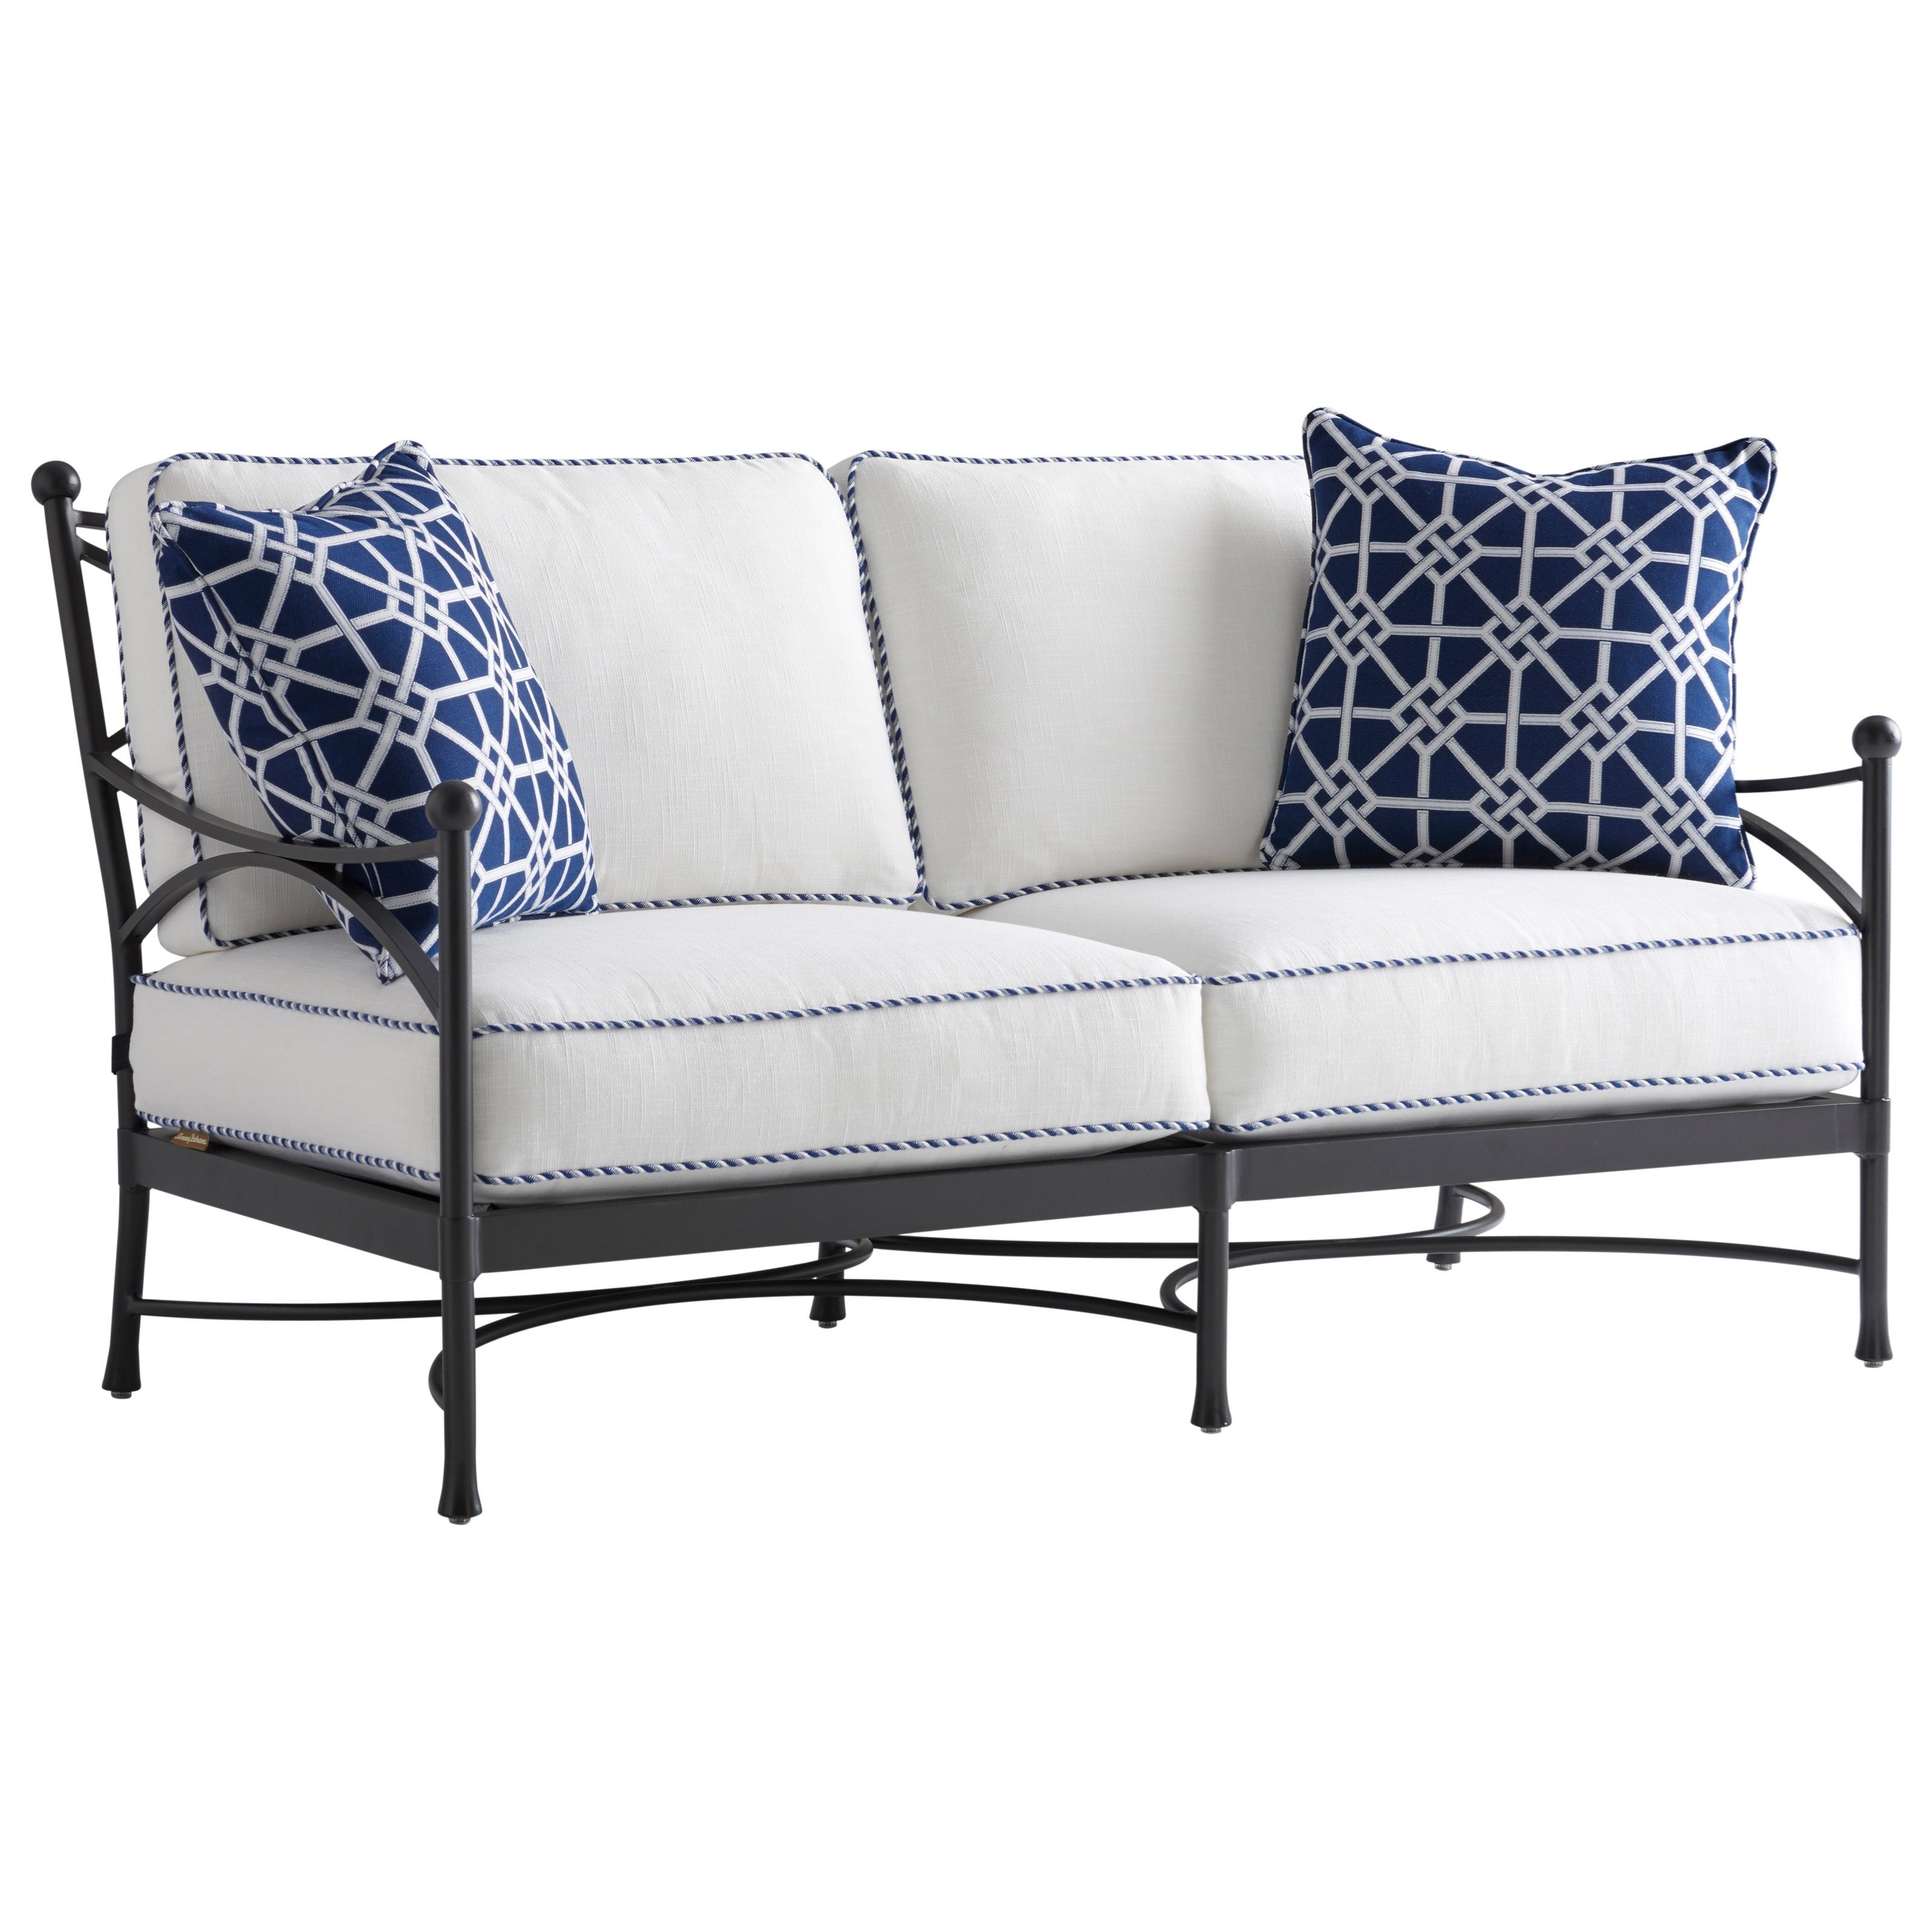 Pavlova Outdoor Loveseat by Tommy Bahama Outdoor Living at Baer's Furniture